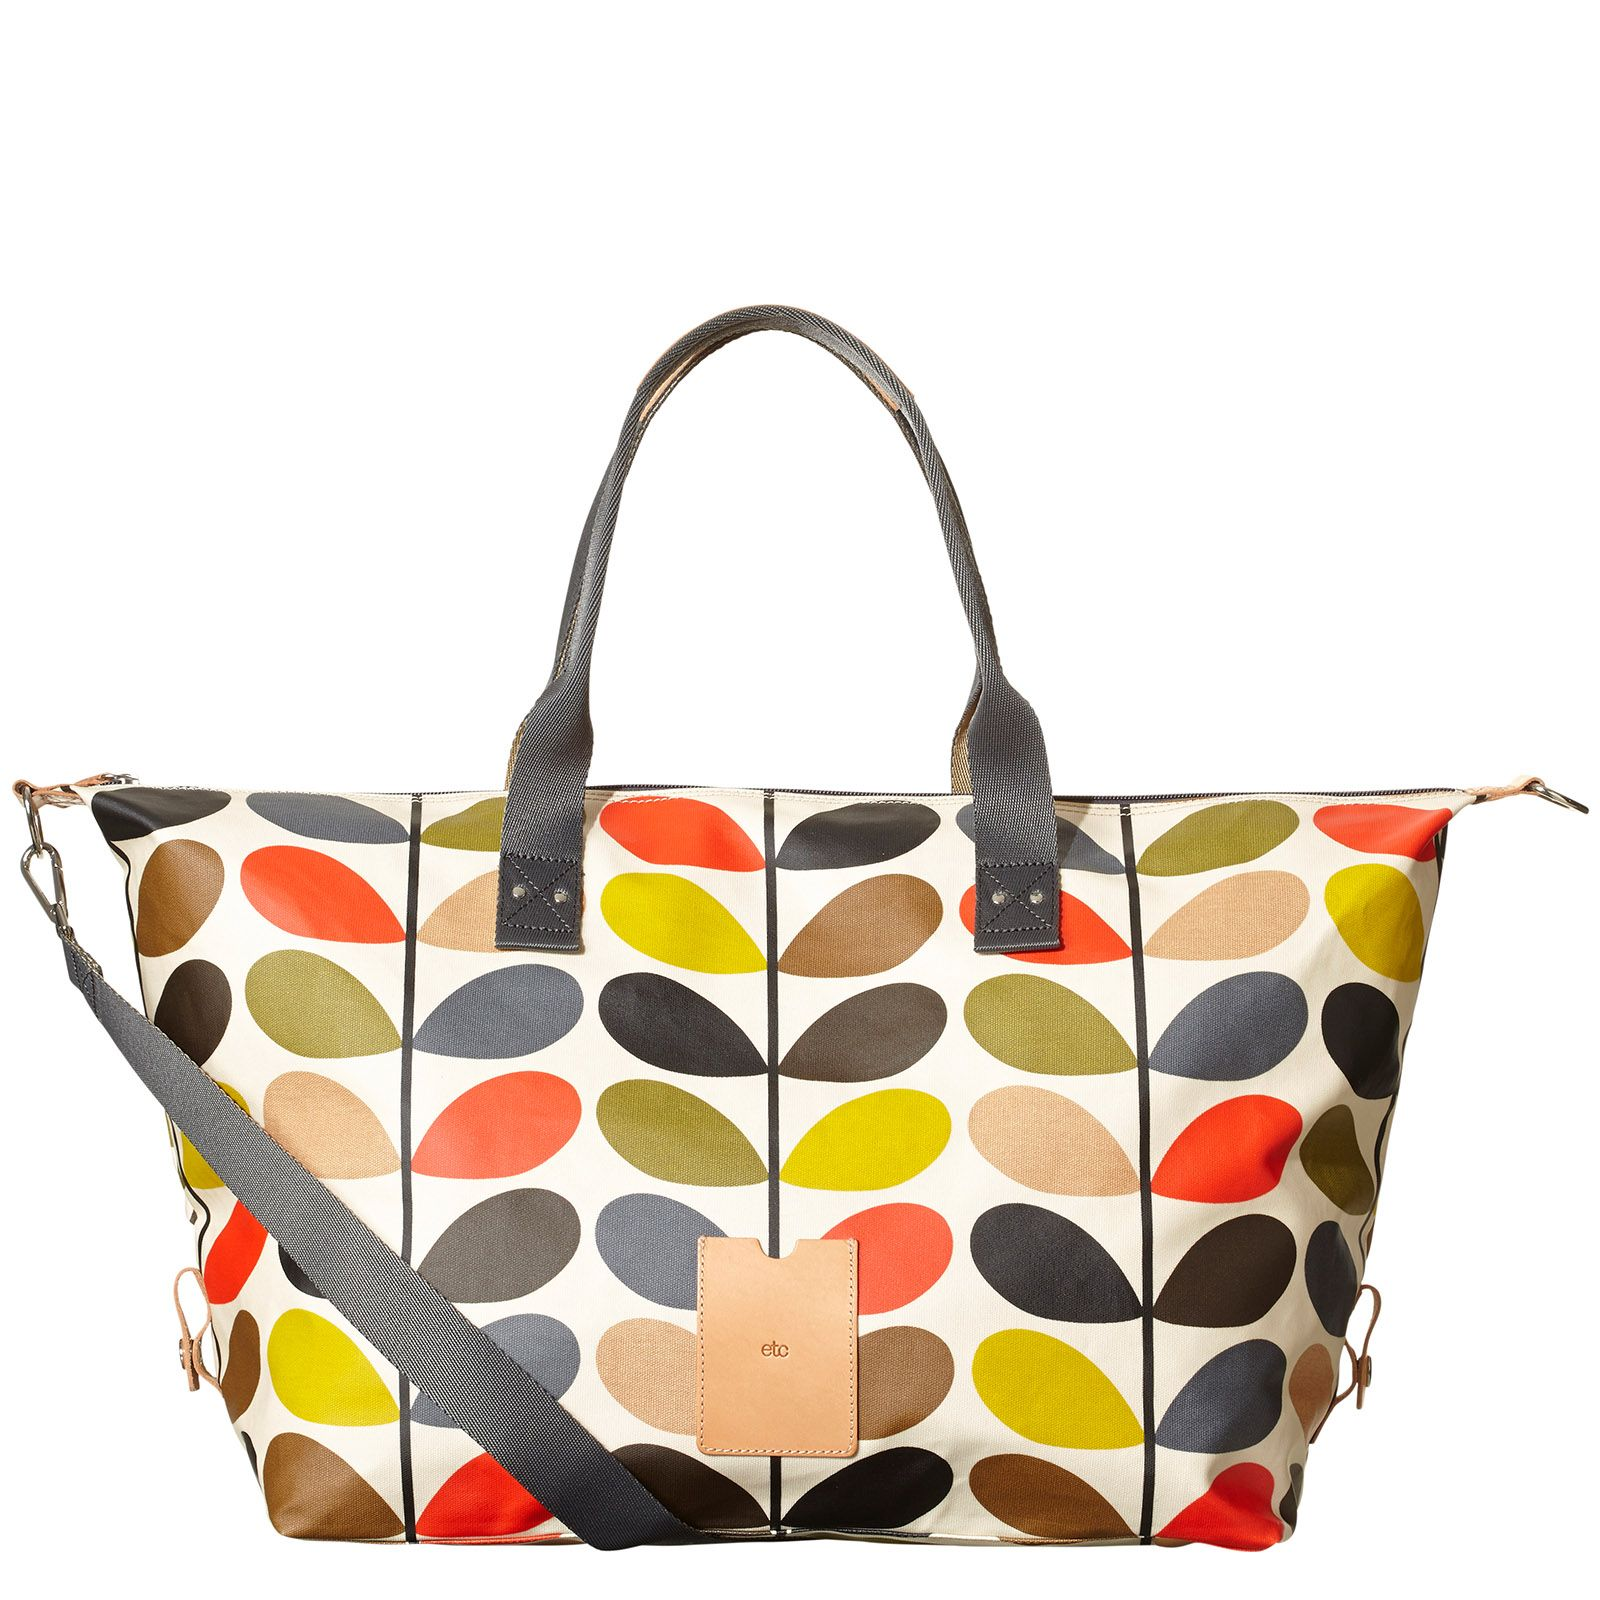 734a63089b Orla Kiely  Matte laminated weekend bag in the classic Multi Stem print  with leather trims